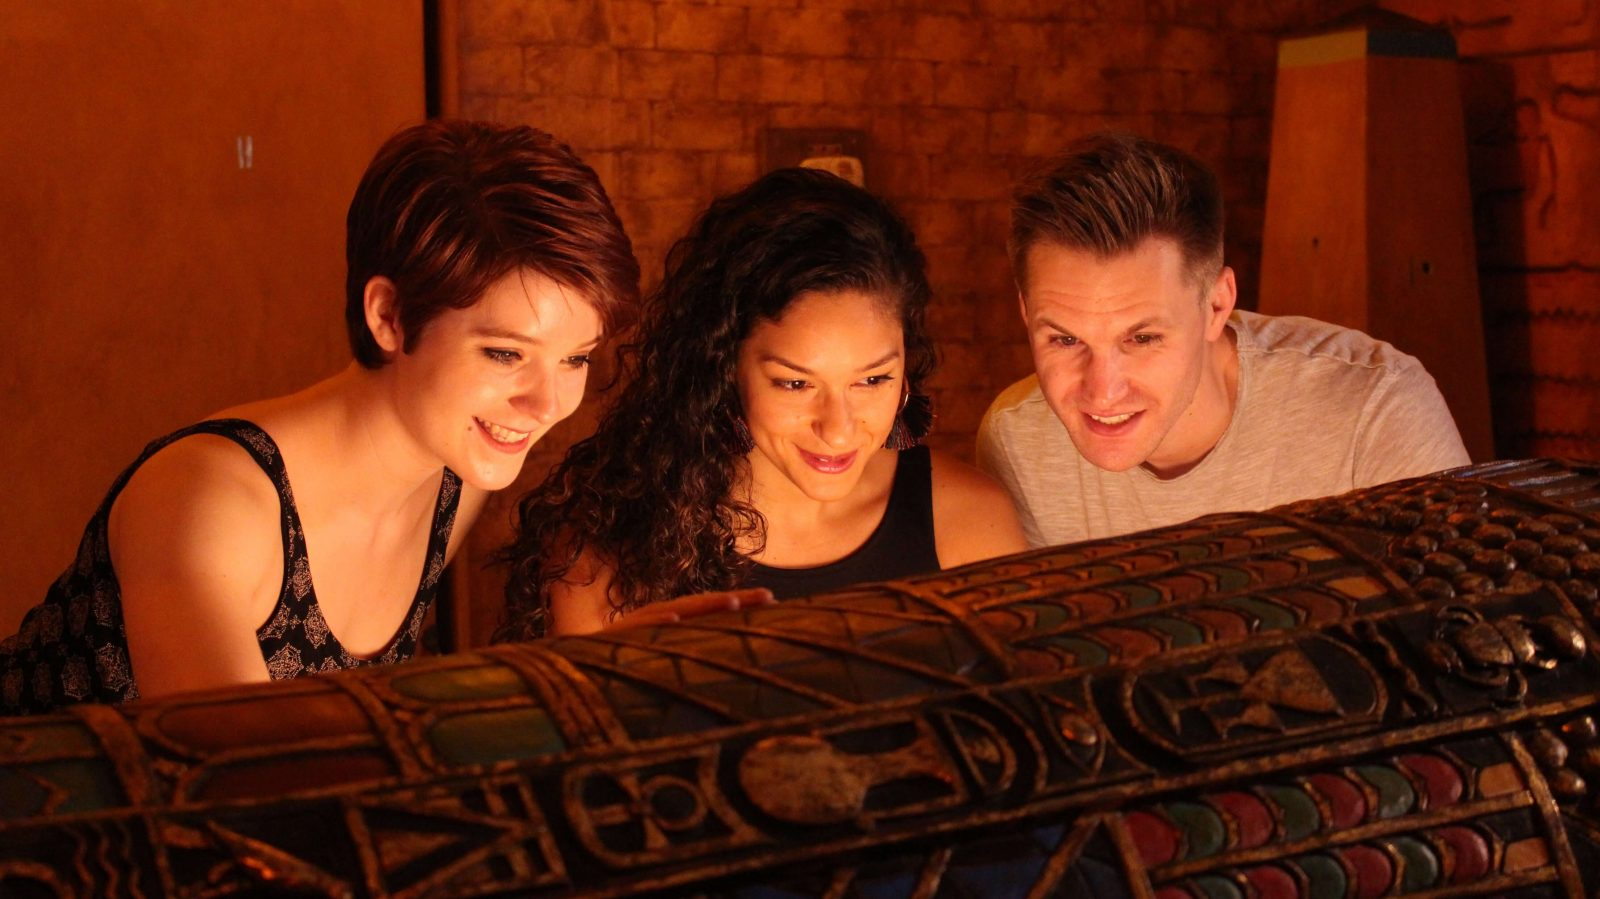 Three players in the egyptian tomb escape room looking down at a sarcophagus, their faces lit from below.